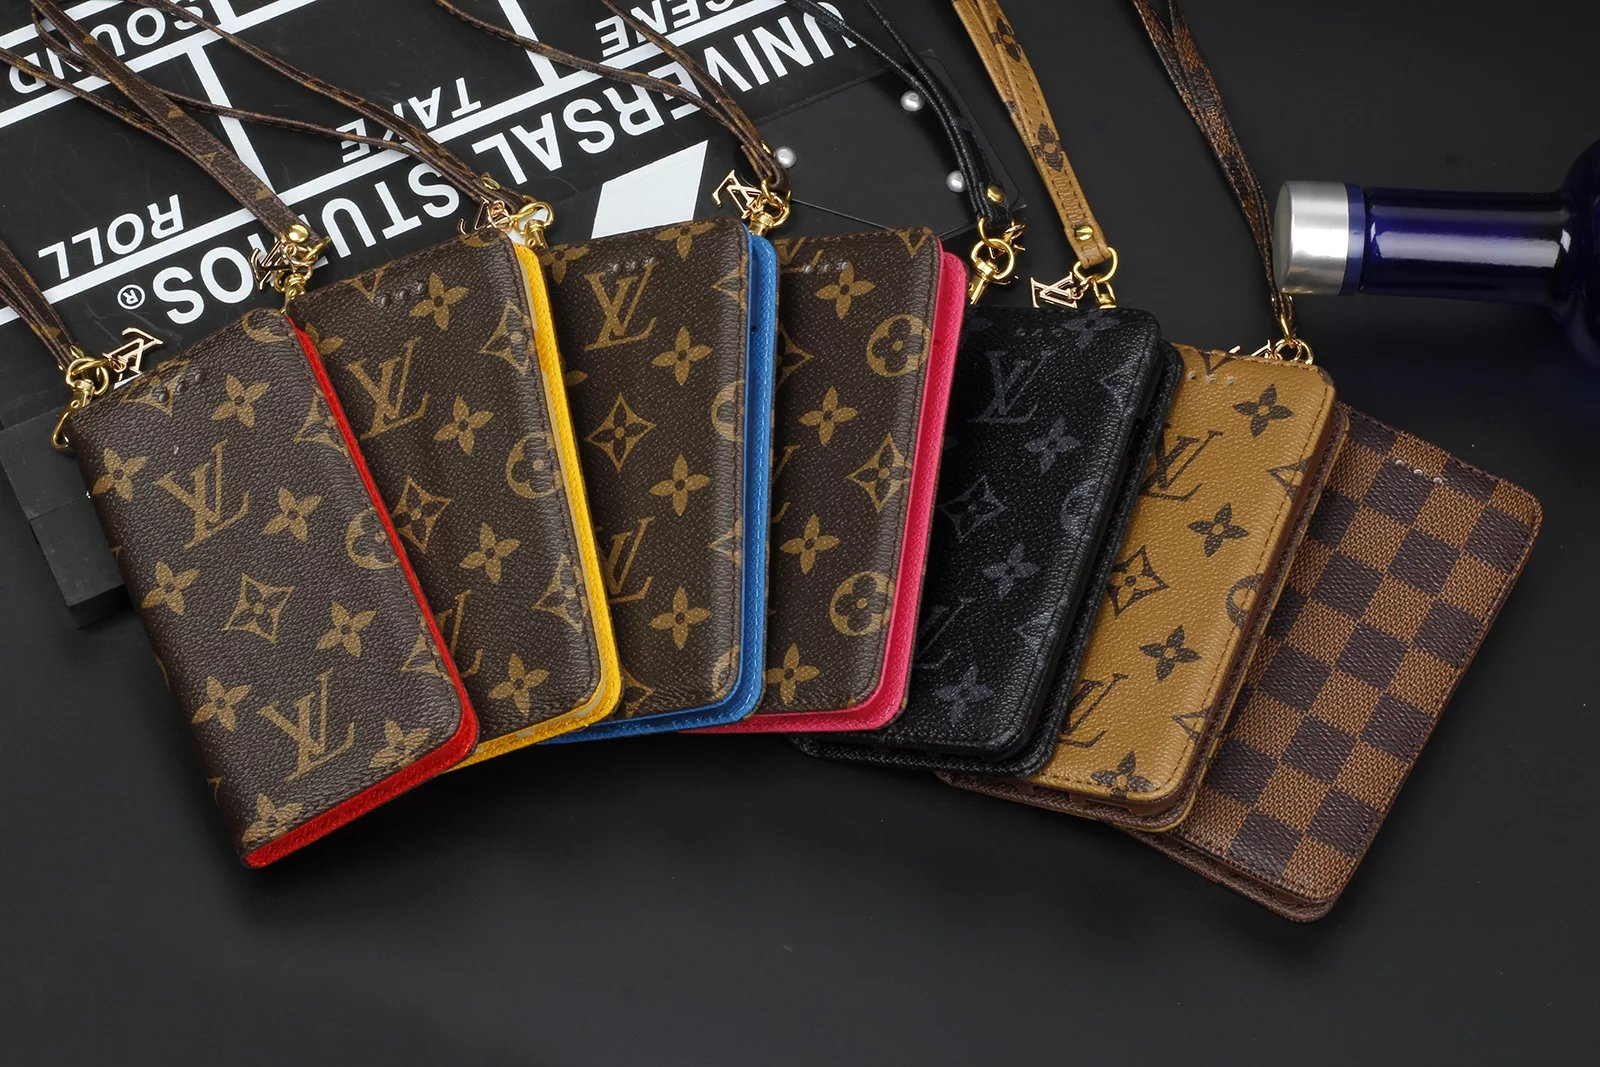 iphone hülle leder iphone hülle bedrucken lassen Louis Vuitton iphone6s hülle smartphone hüllen test iphone 6s hülle gummi iphone 6s hülle mit akku kas6sttenhülle iphone 6s apple iphone 6s hülle hülle für iphone